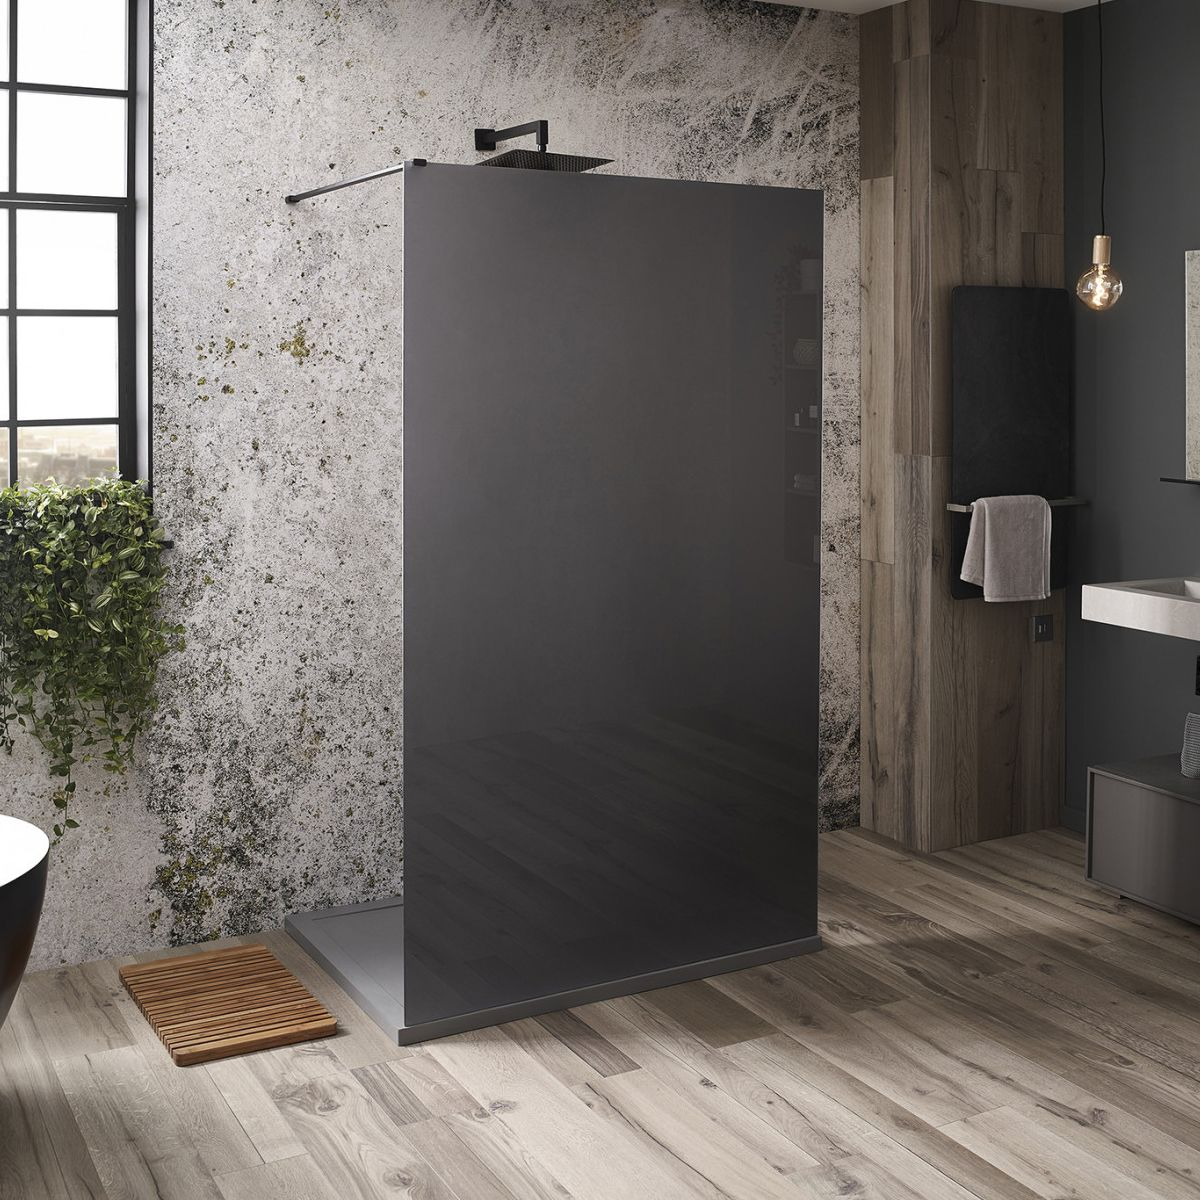 Frontline Aquaglass Mono Black Frosted Shower Screen with Dual Access Pack